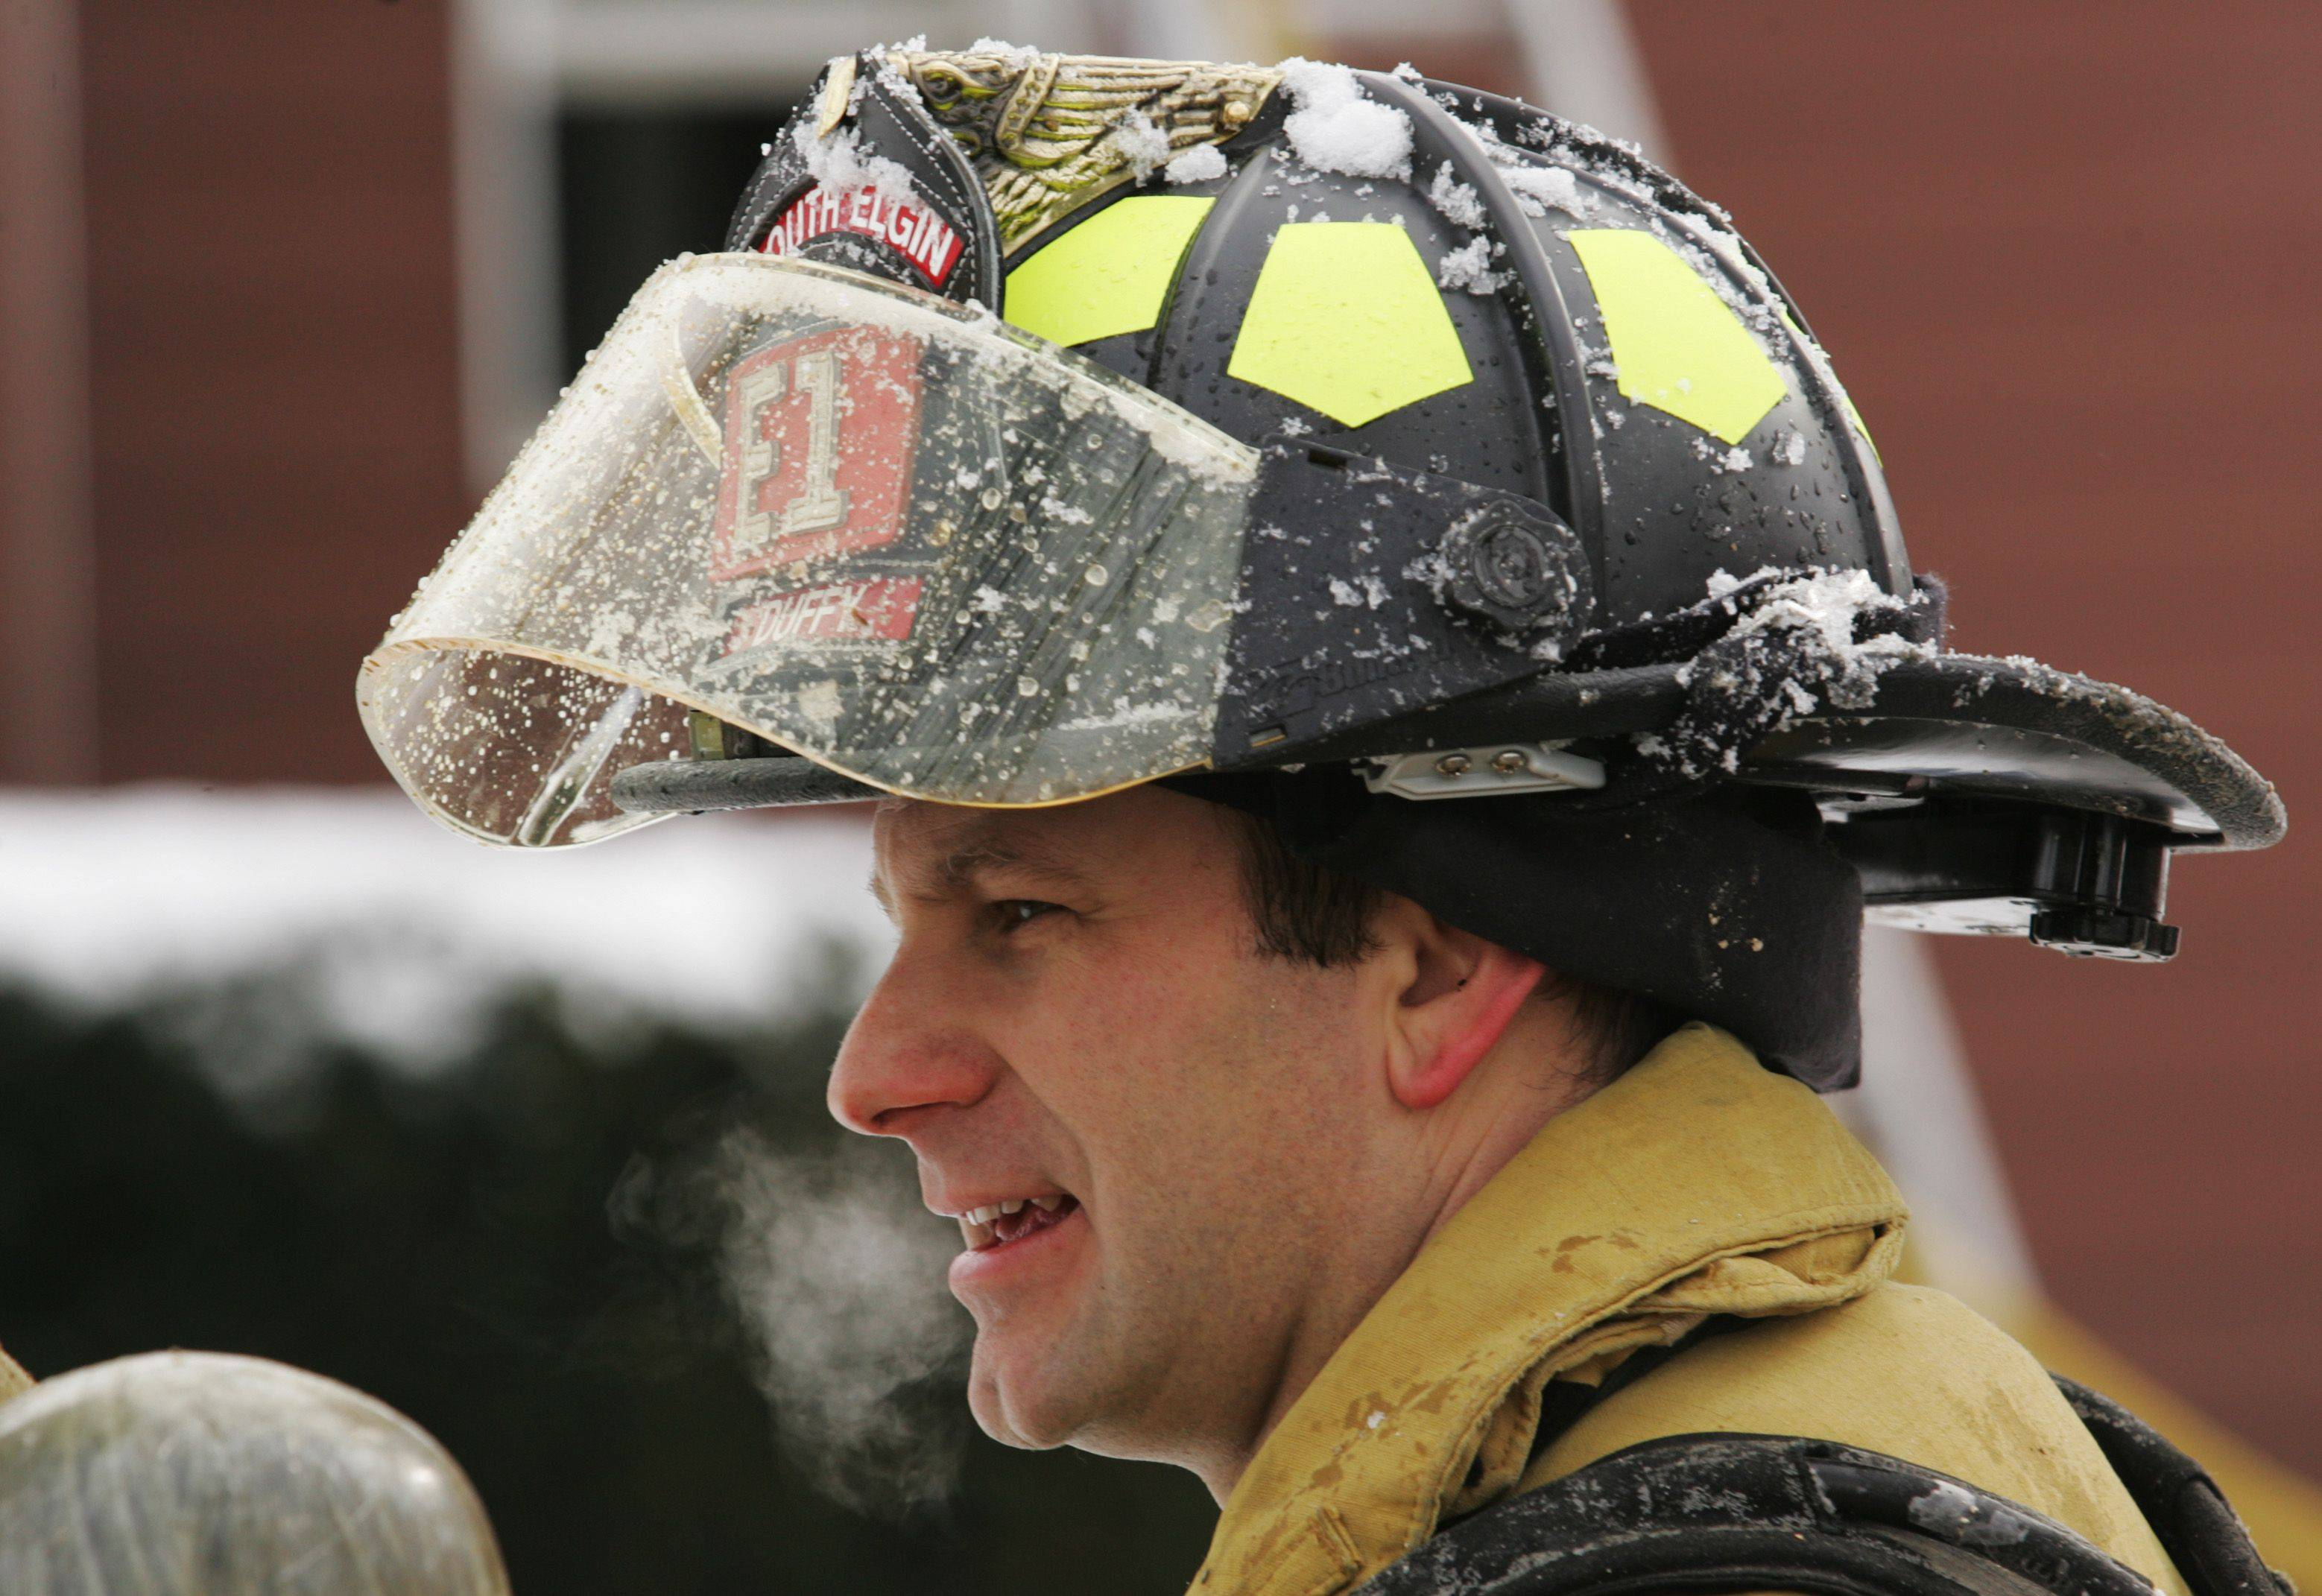 In the chilly winter air Thursday, South Elgin firefighter Paul Duffy talks with other members of his department at the scene of a house fire on Gale Street in Elgin Township.